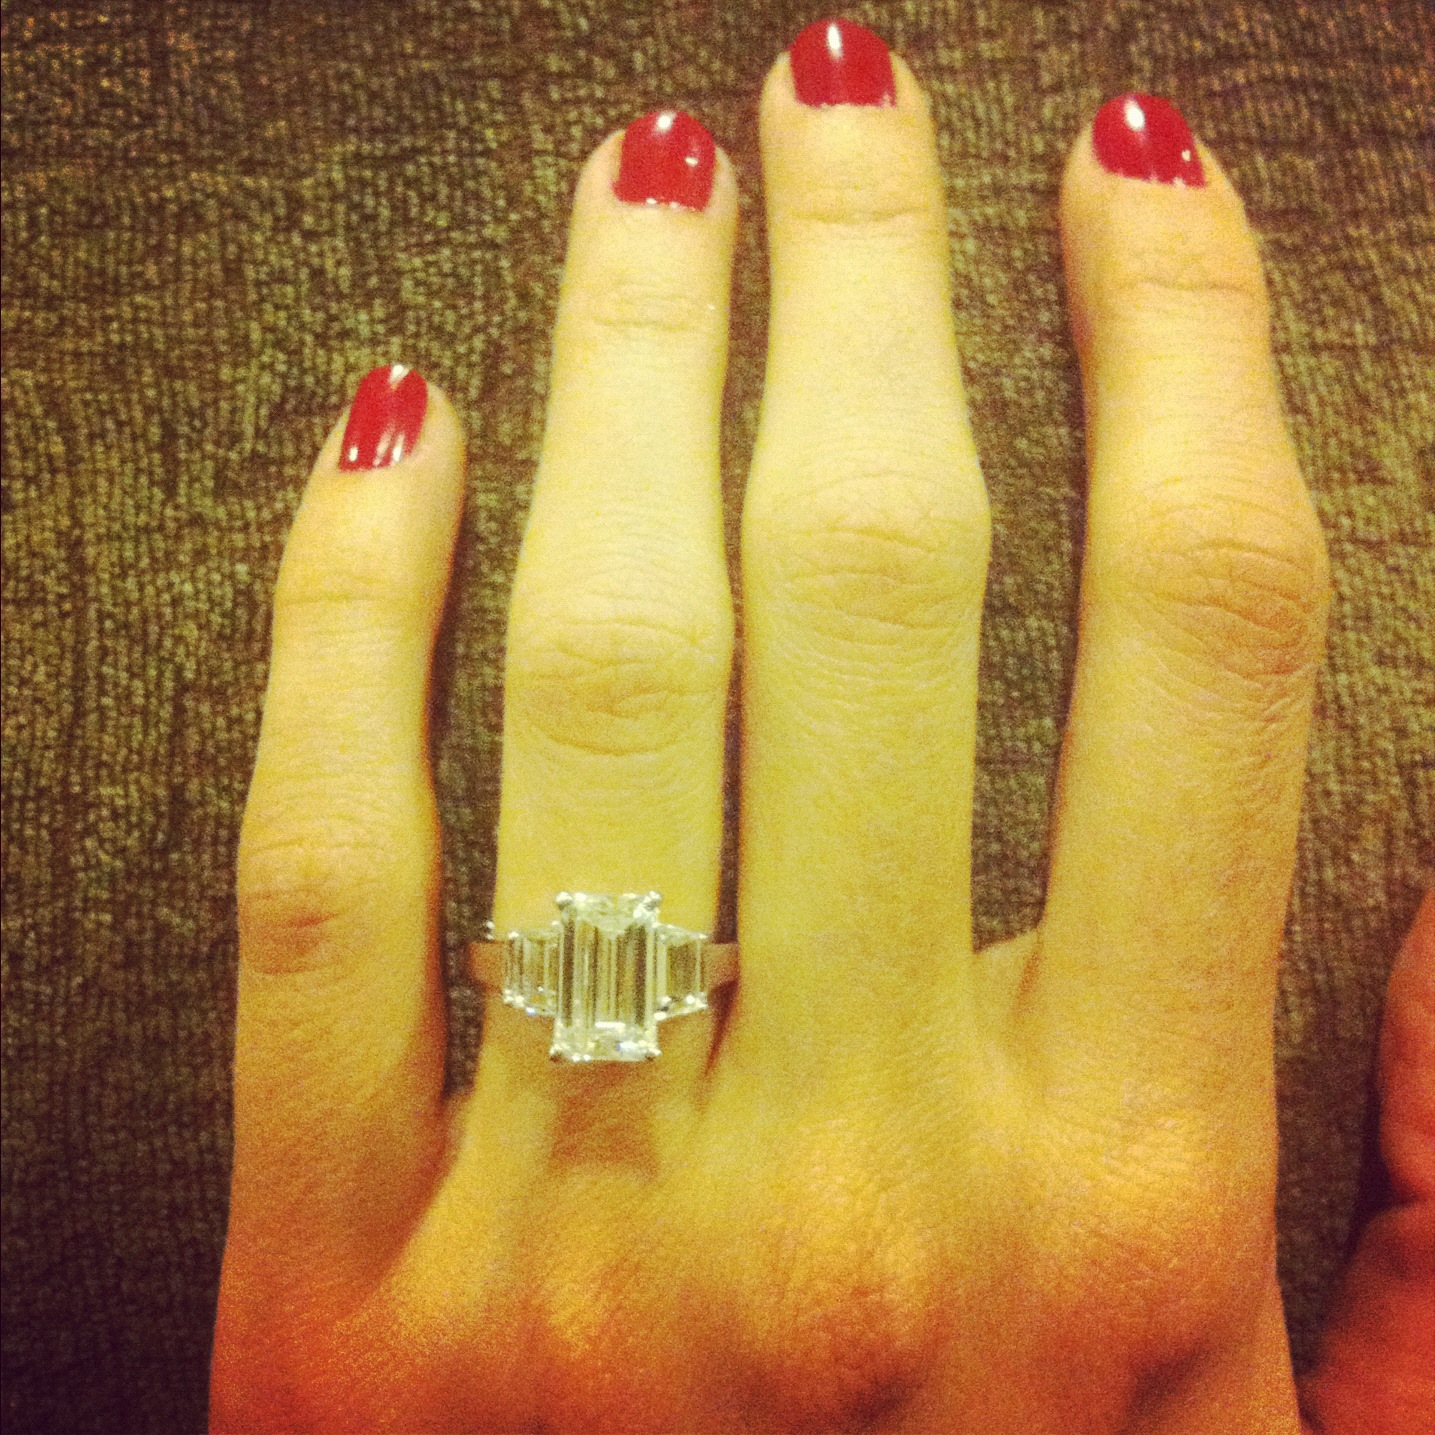 Fun Personal Fact - I got engaged on Thanksgiving, and married one year to the day later! This was my Instagram pic!